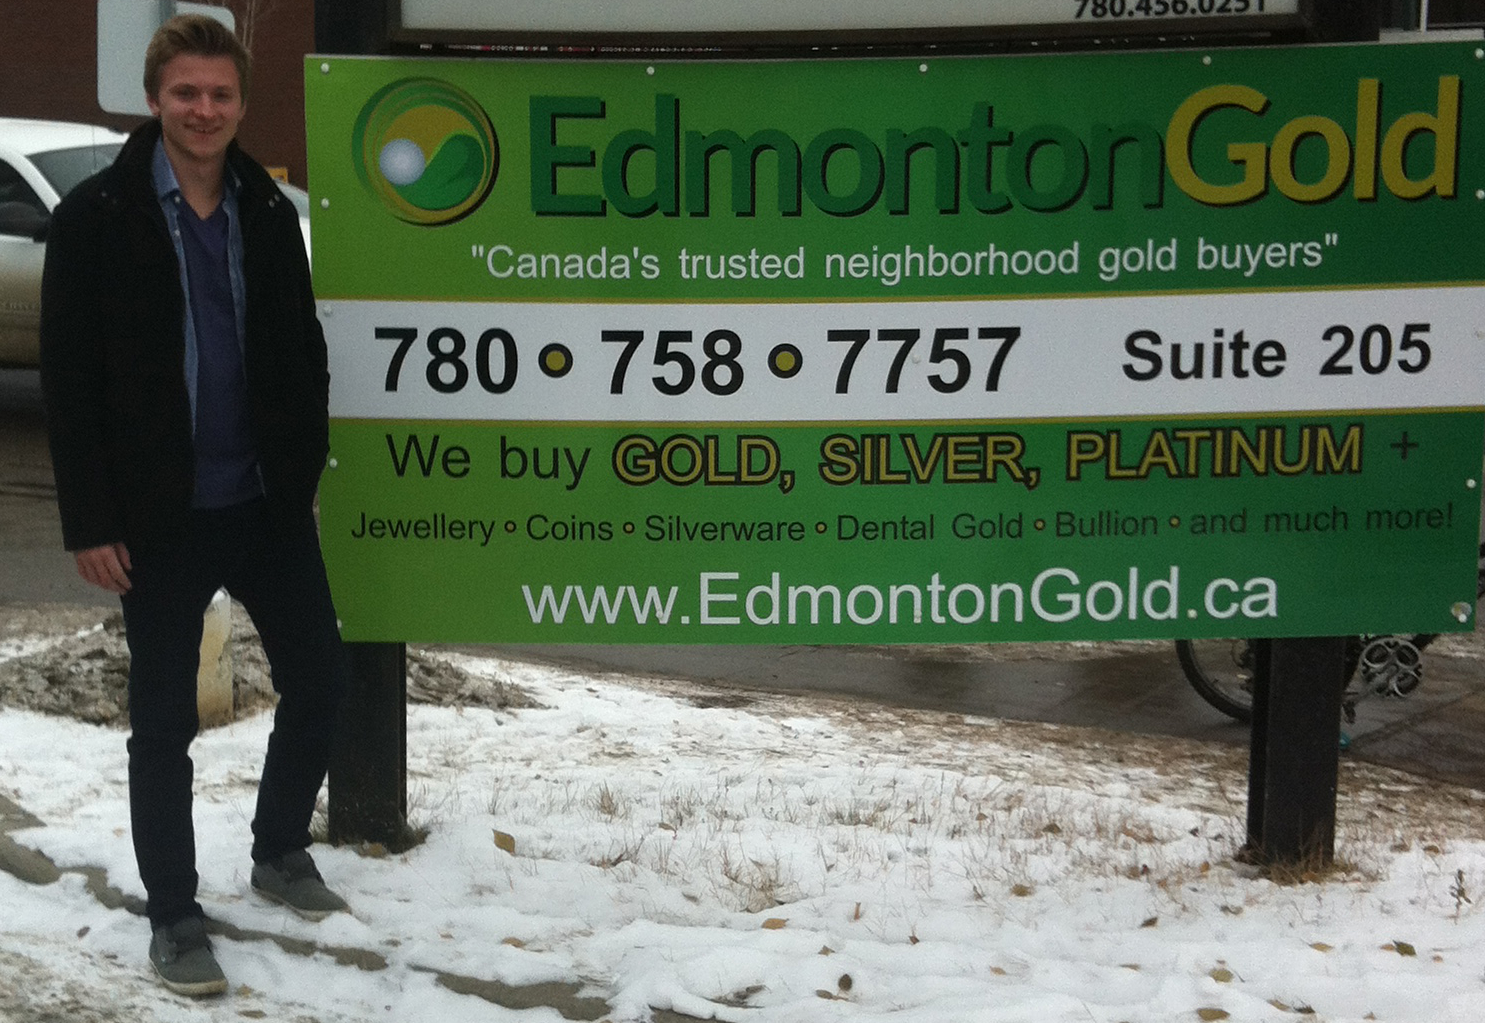 Edmonton Gold manager Chris Gardner